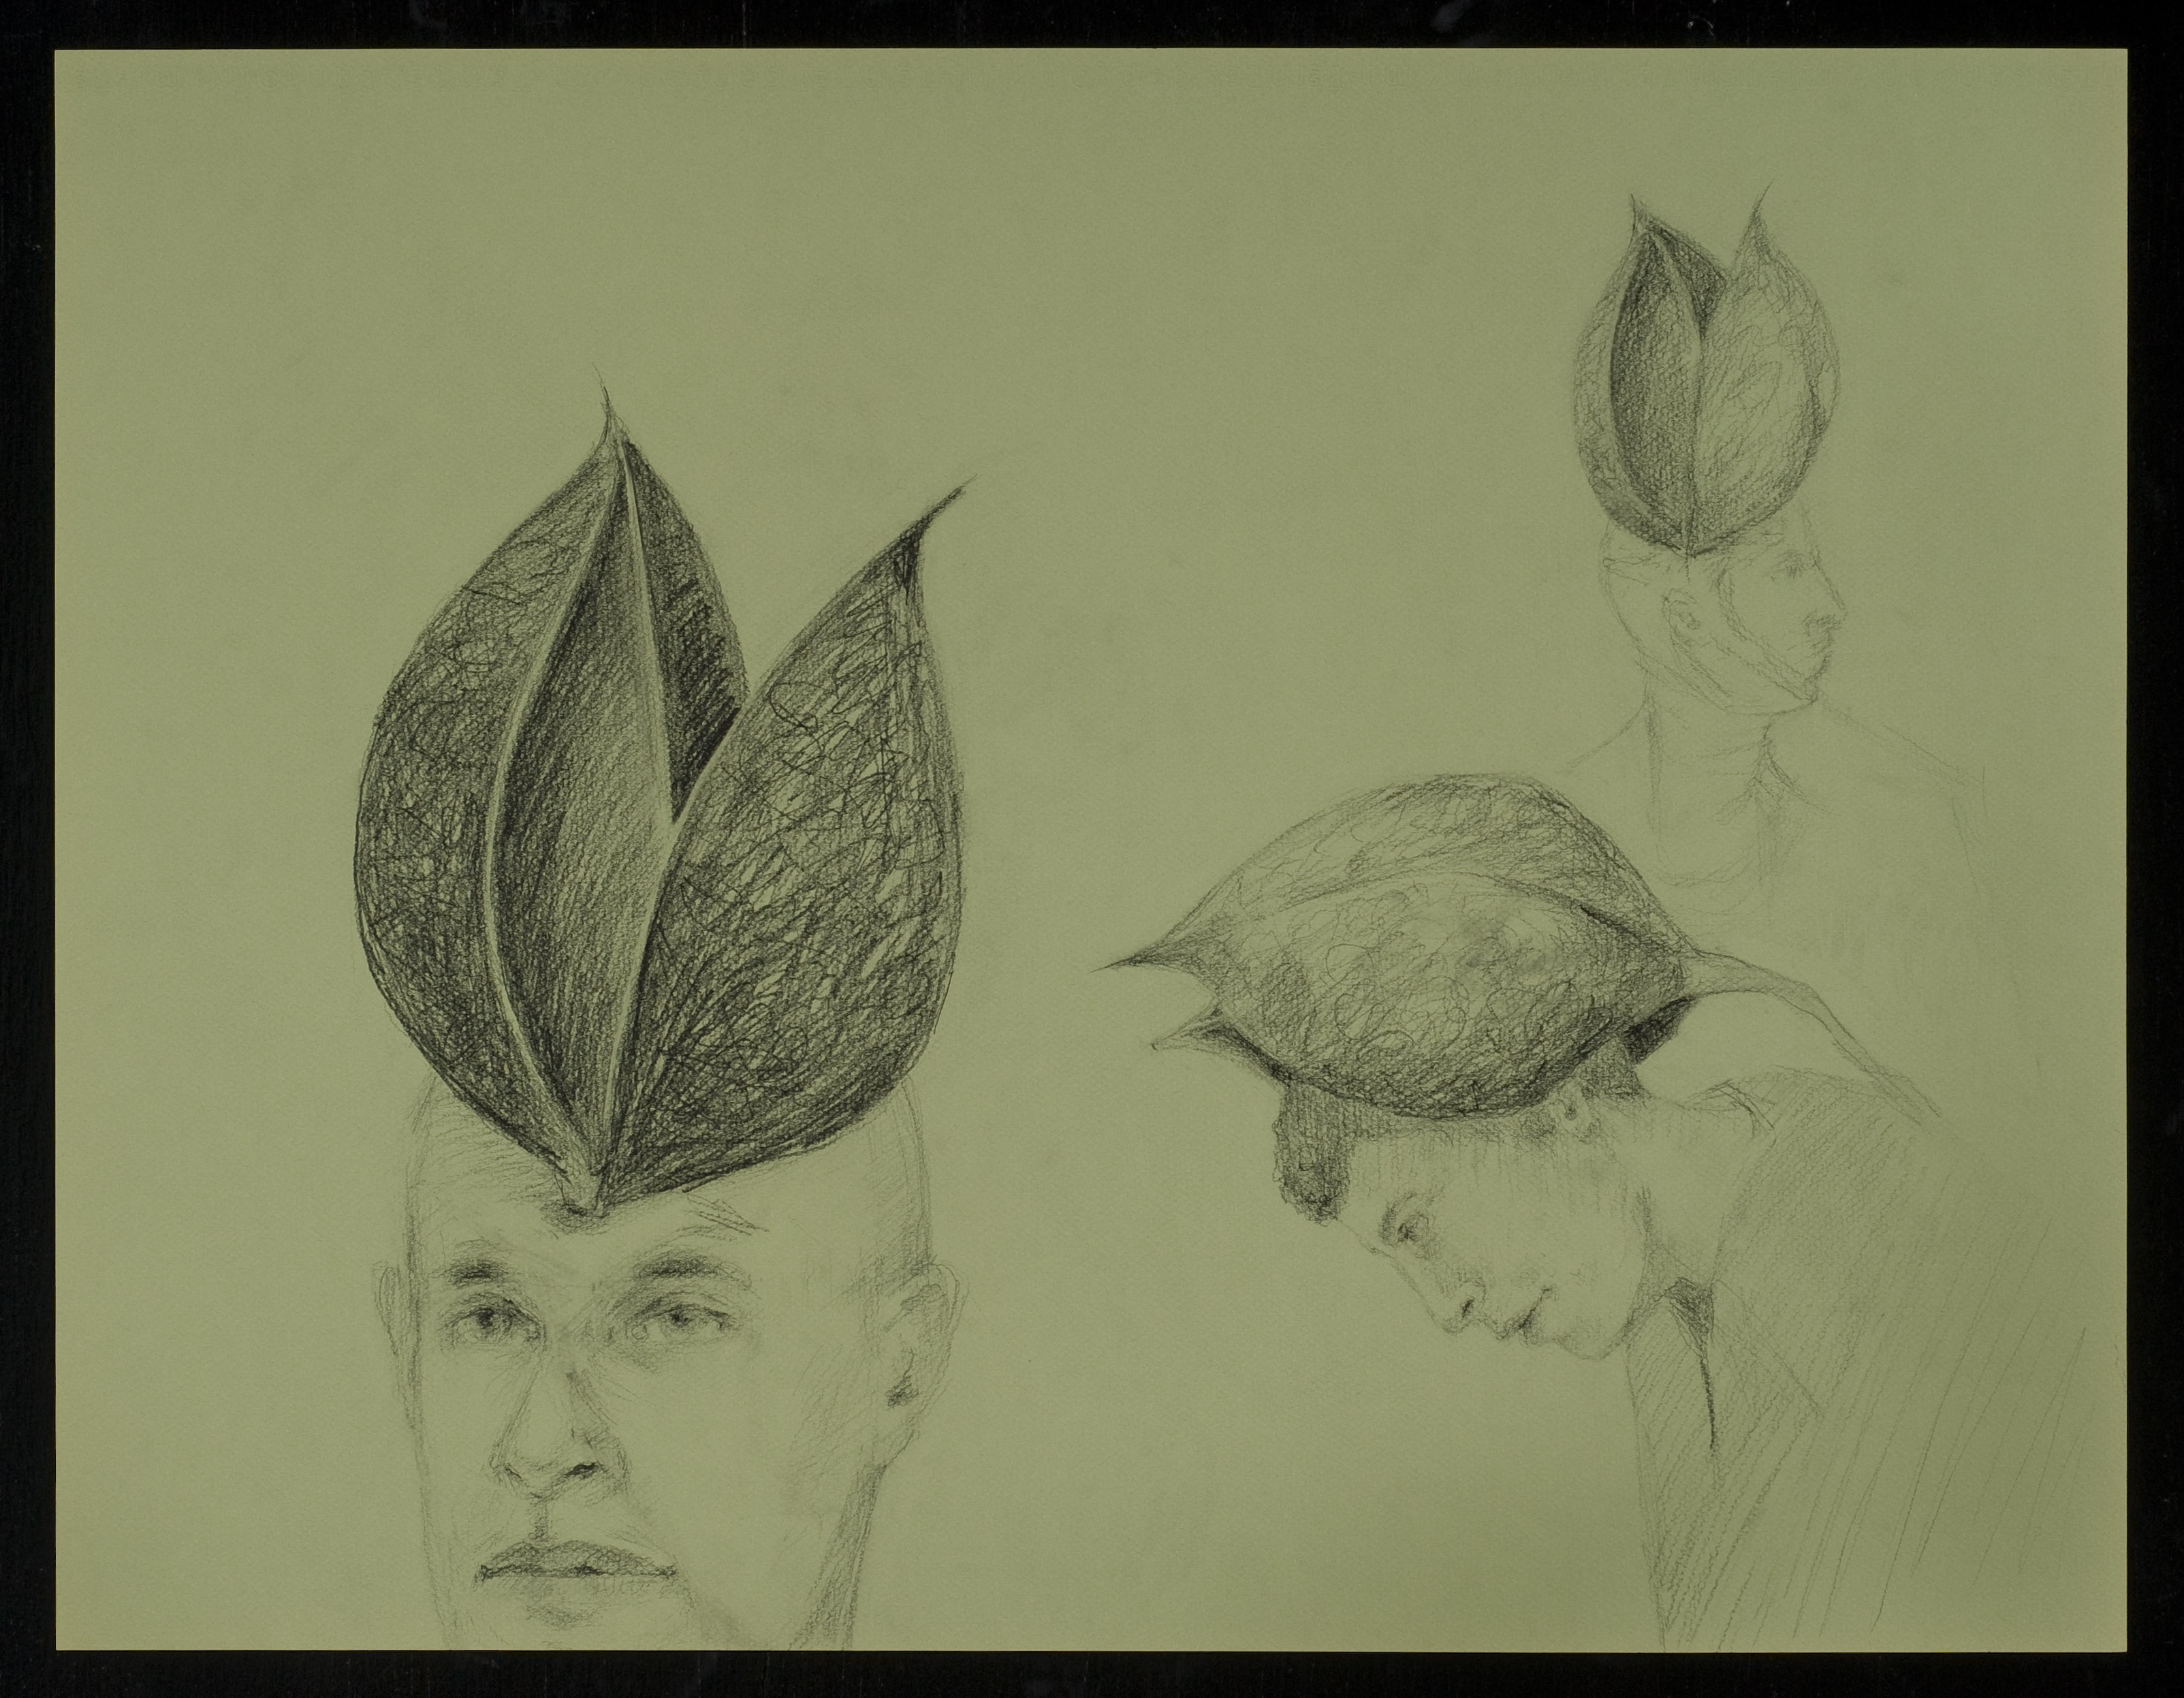 graphite, drawing, pods, pod heads, nature, balancing, seeds